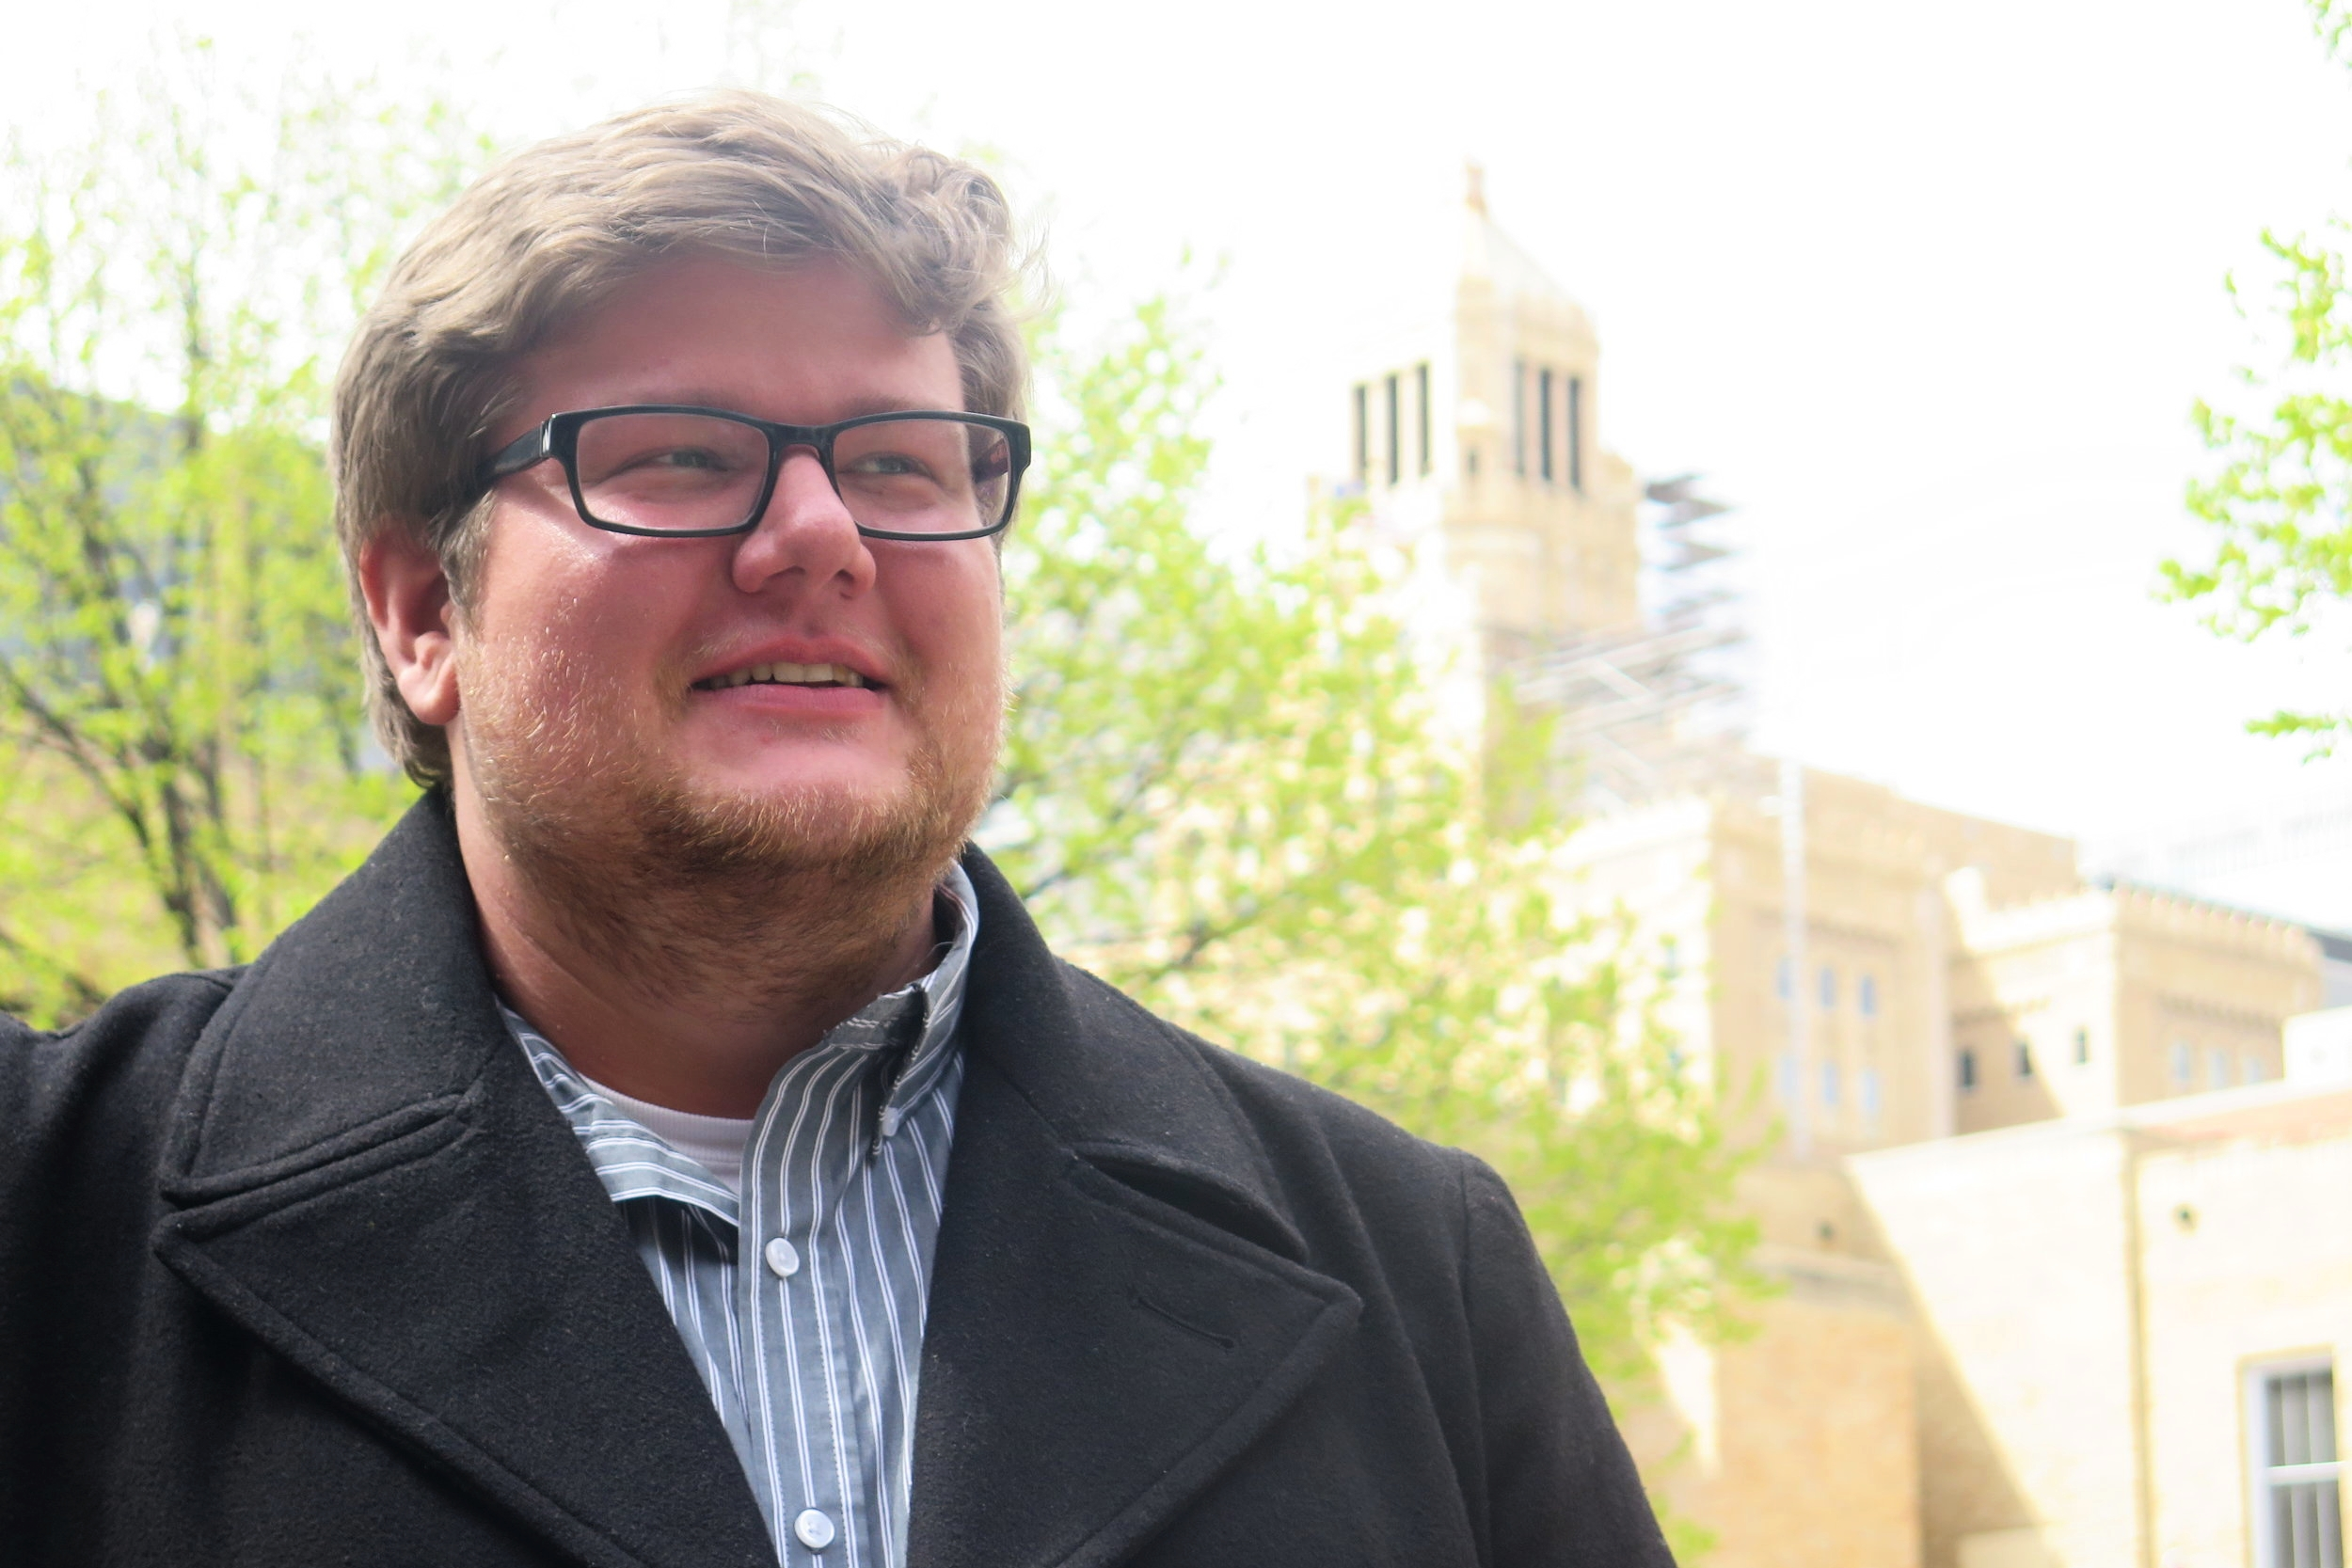 Meet the 24-year-old who dropped out of law school to become